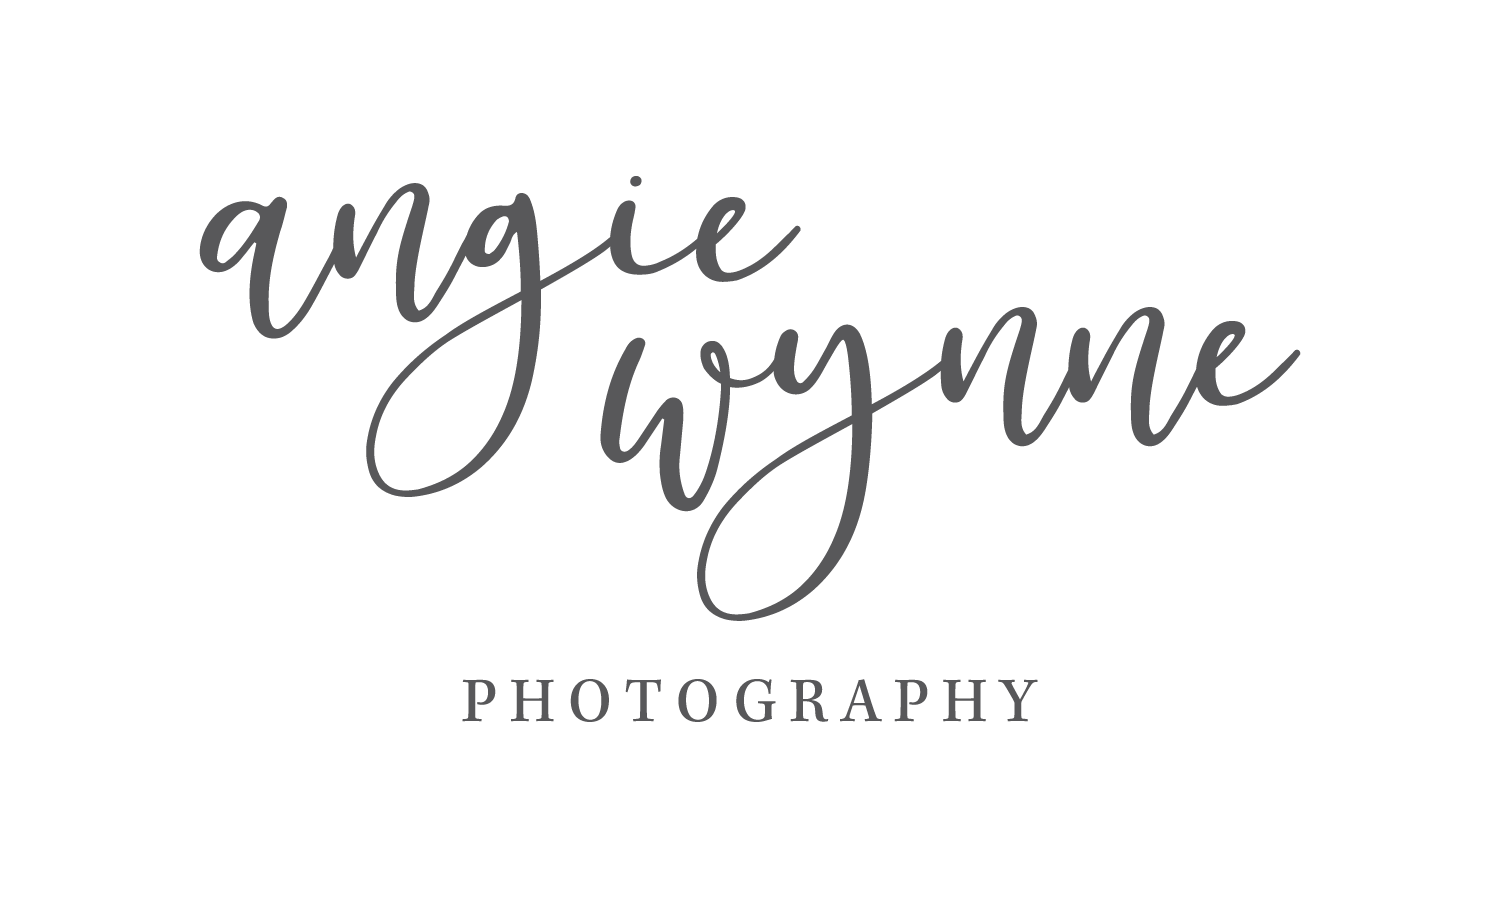 Angie Wynne Photography St. Louis Newborn-Family-Photographer | Lifestyle, Emotive Photography